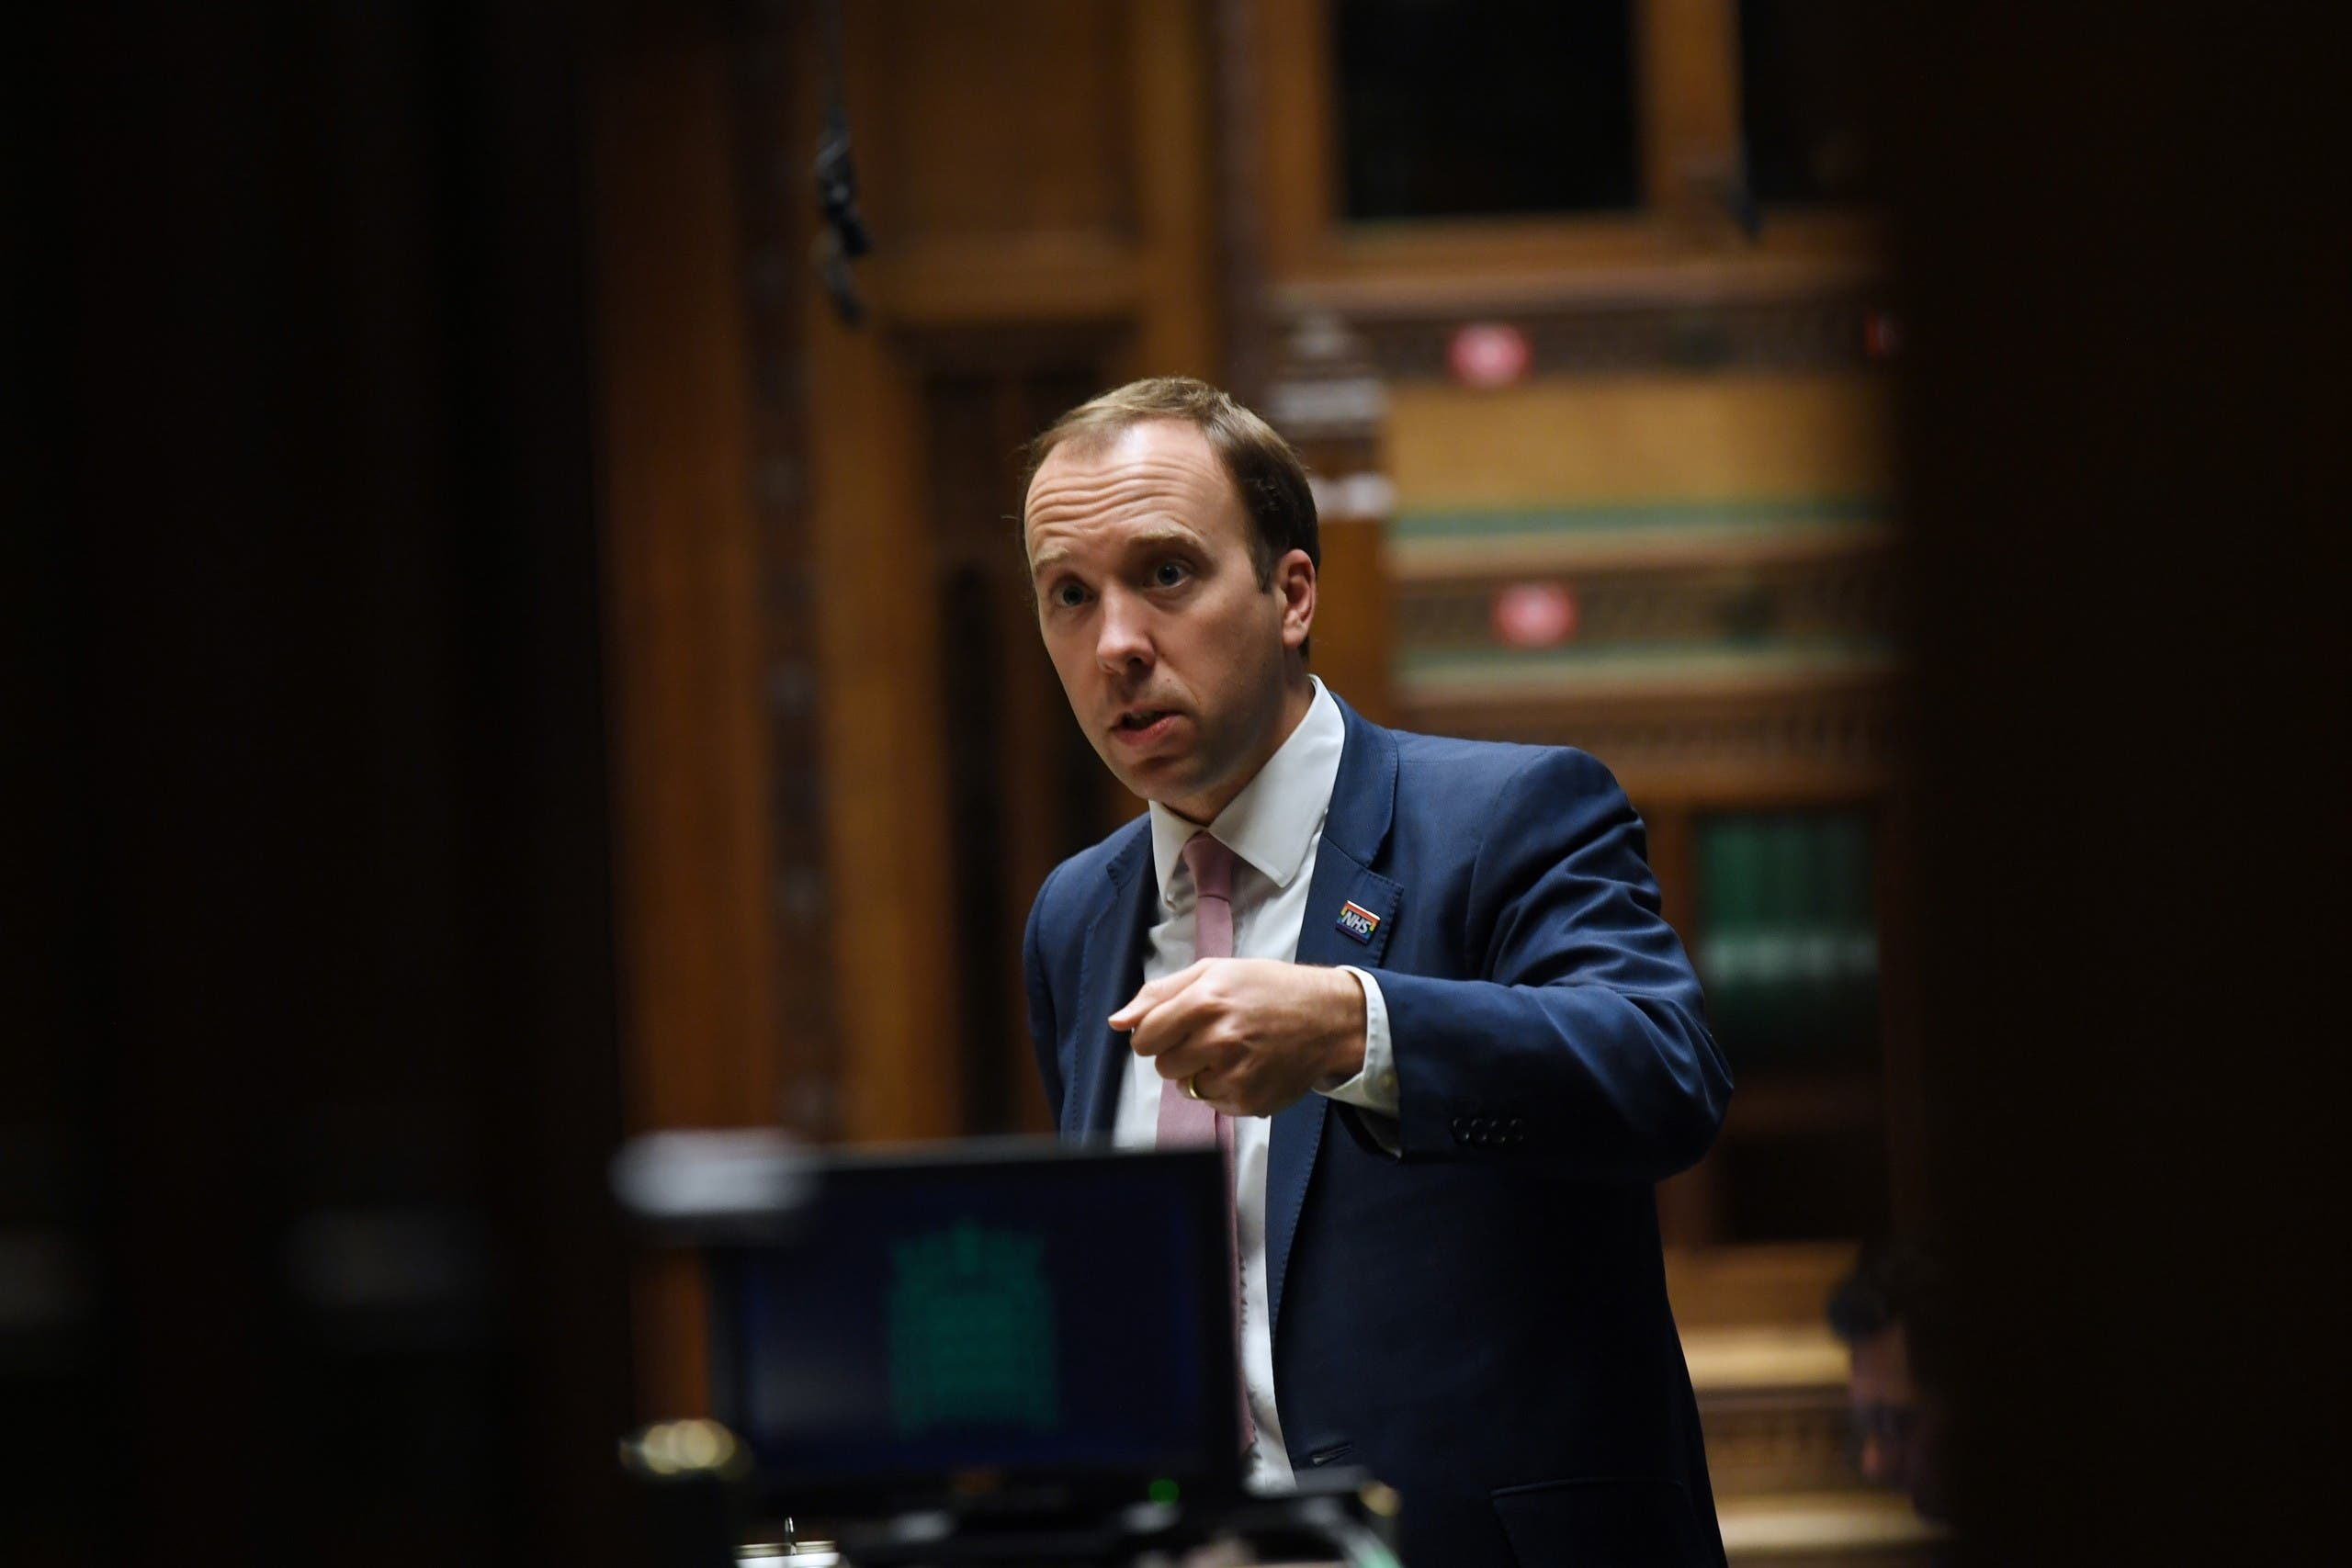 A handout photograph released by the UK Parliament shows Britain's Health Secretary Matt Hancock attending a debate on the novel coronavirus COVID-19, in the House of Commons in London. (AFP)